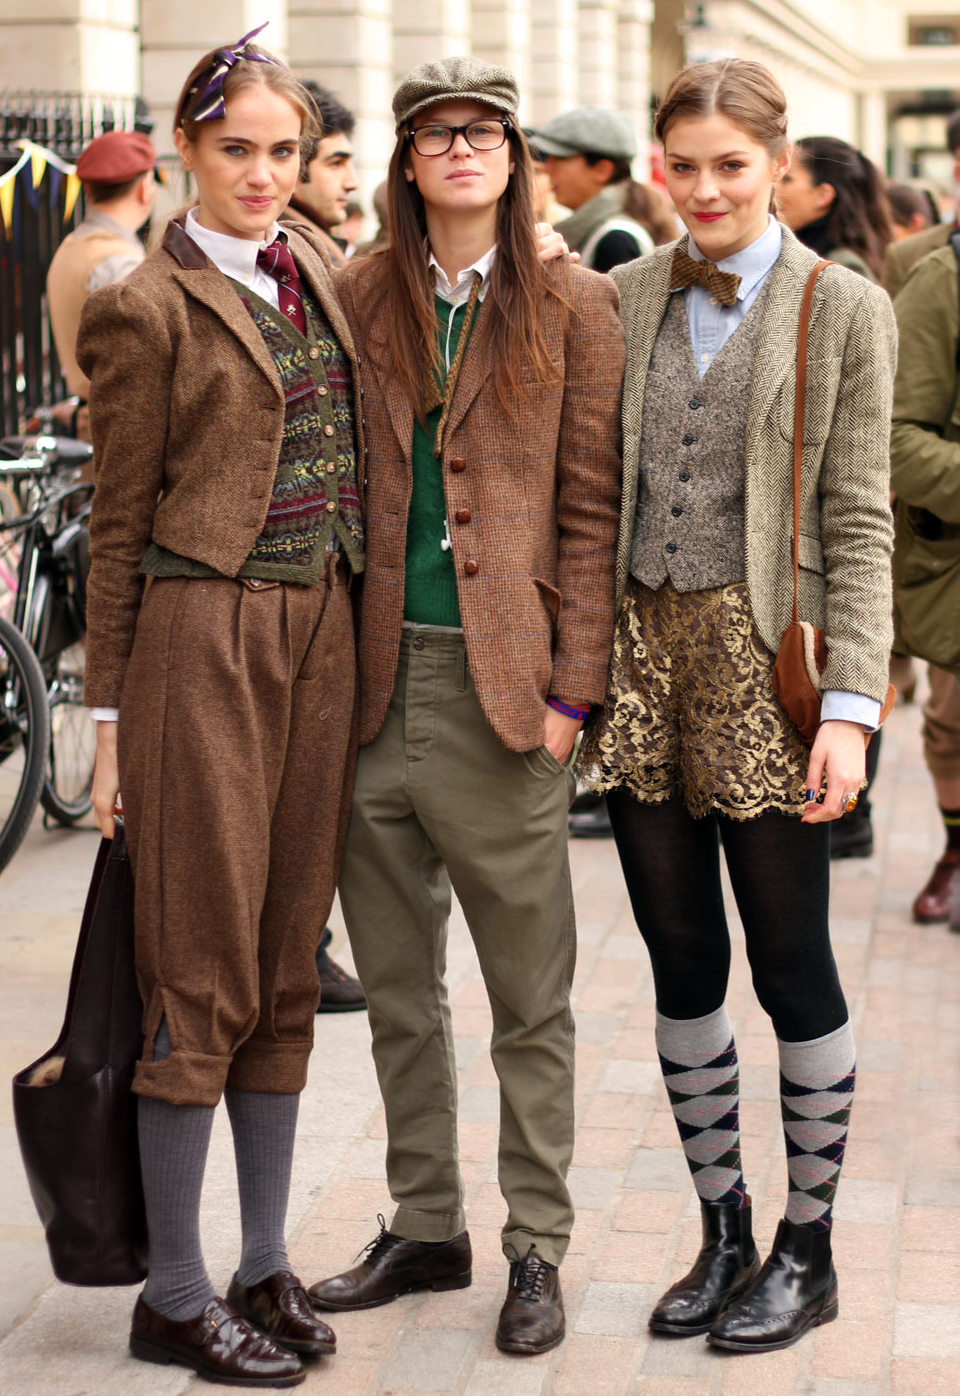 Travelettes Tweed Ride The World S Most Stylish Bike Ride